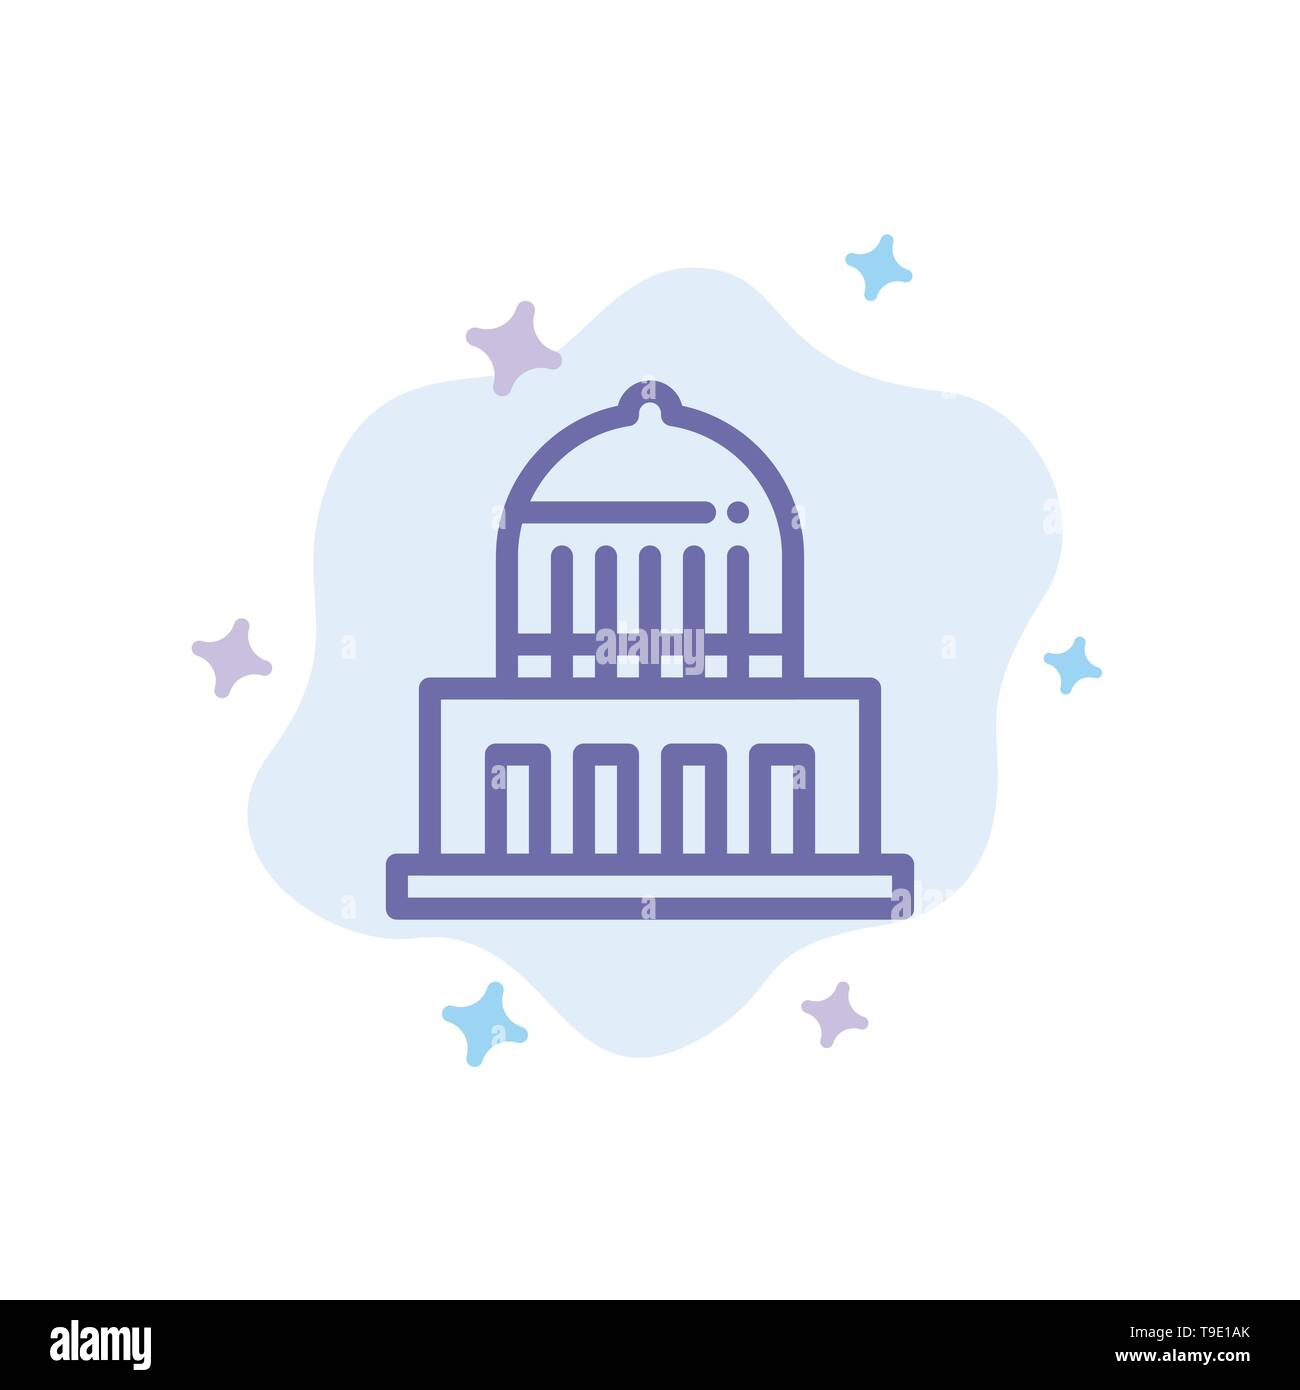 Building, City, Landmark, Usa Blue Icon on Abstract Cloud Background - Stock Image